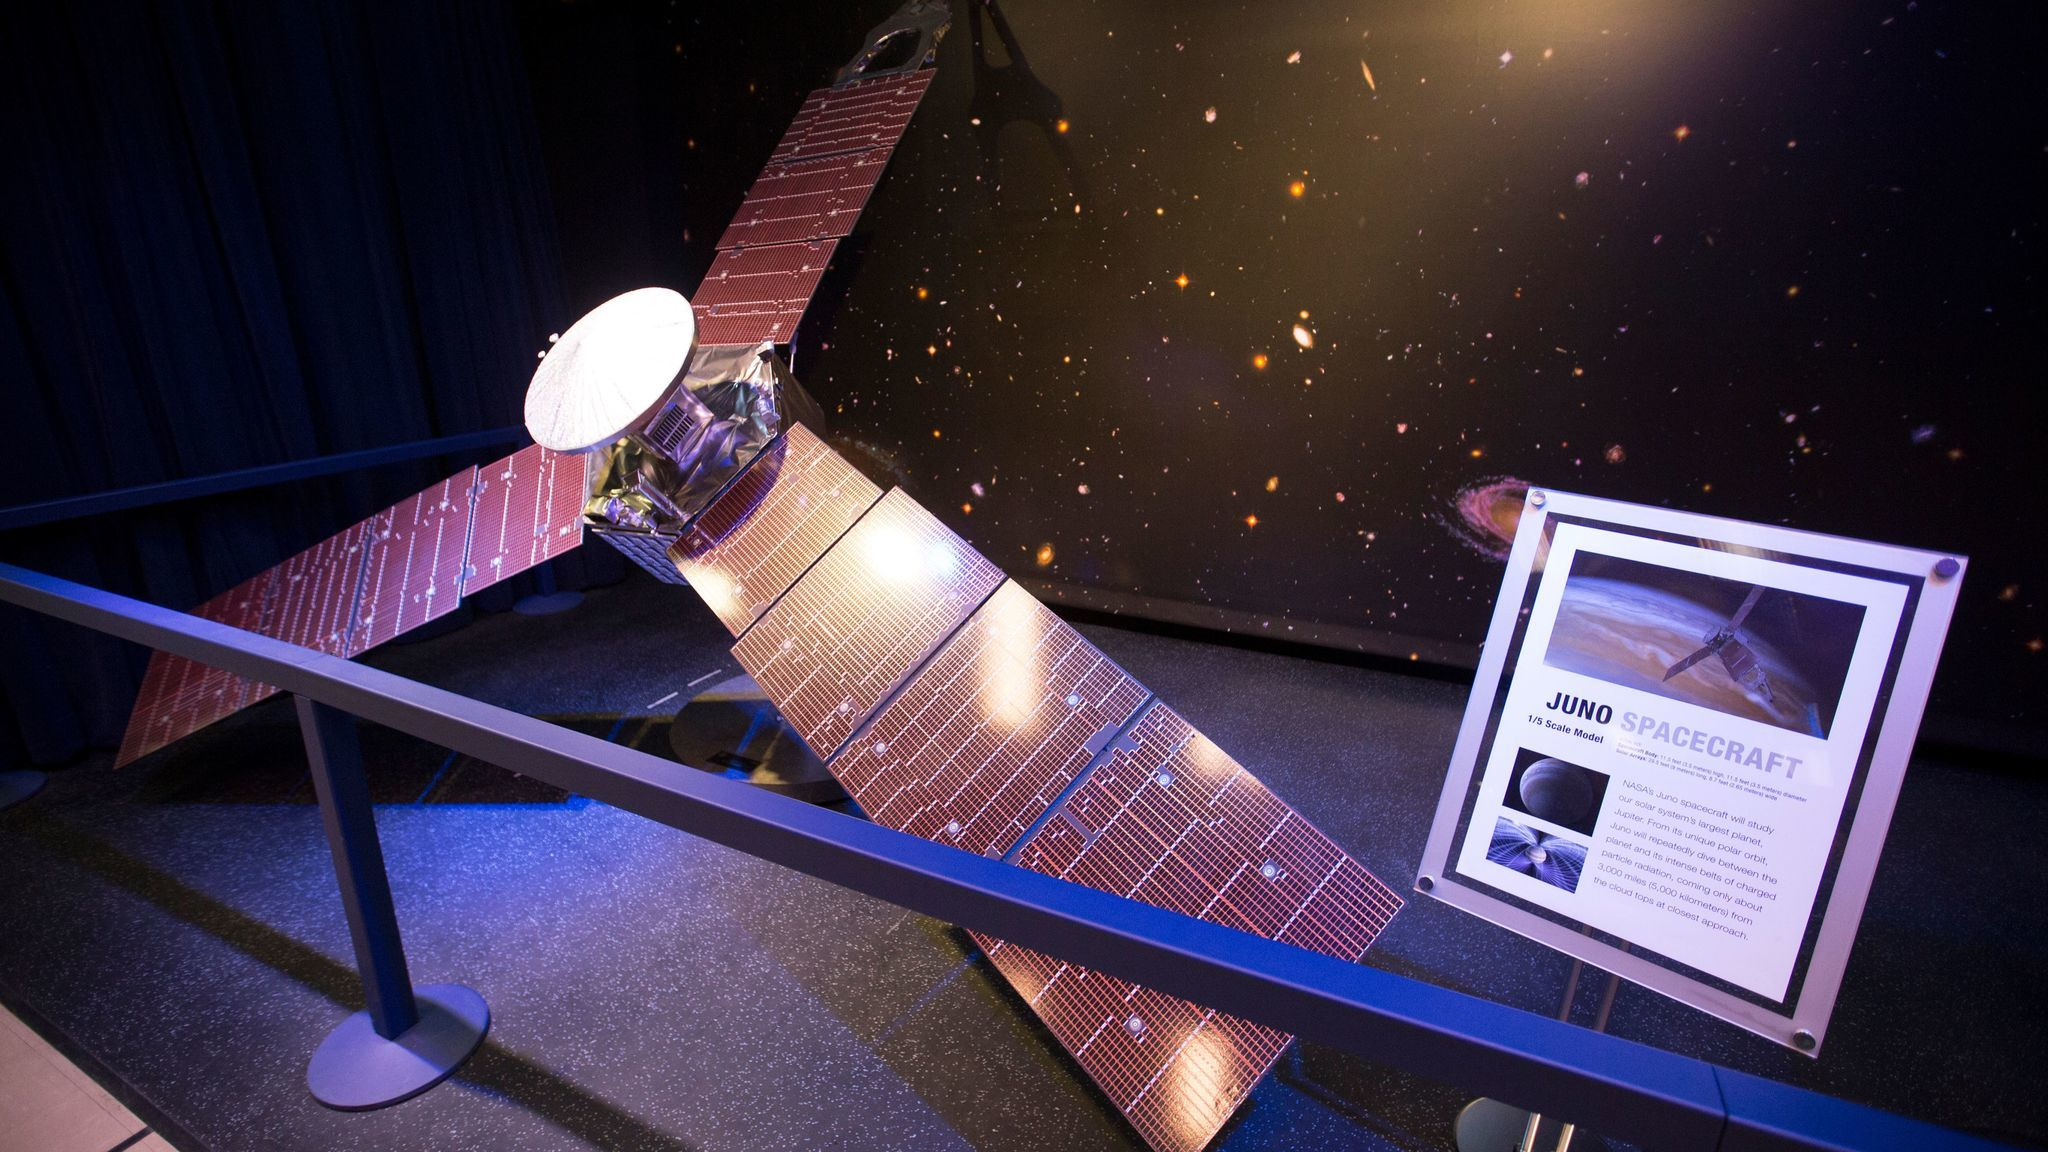 Finley helped design the tones for the Juno spacecraft, a model of which is on display at JPL.